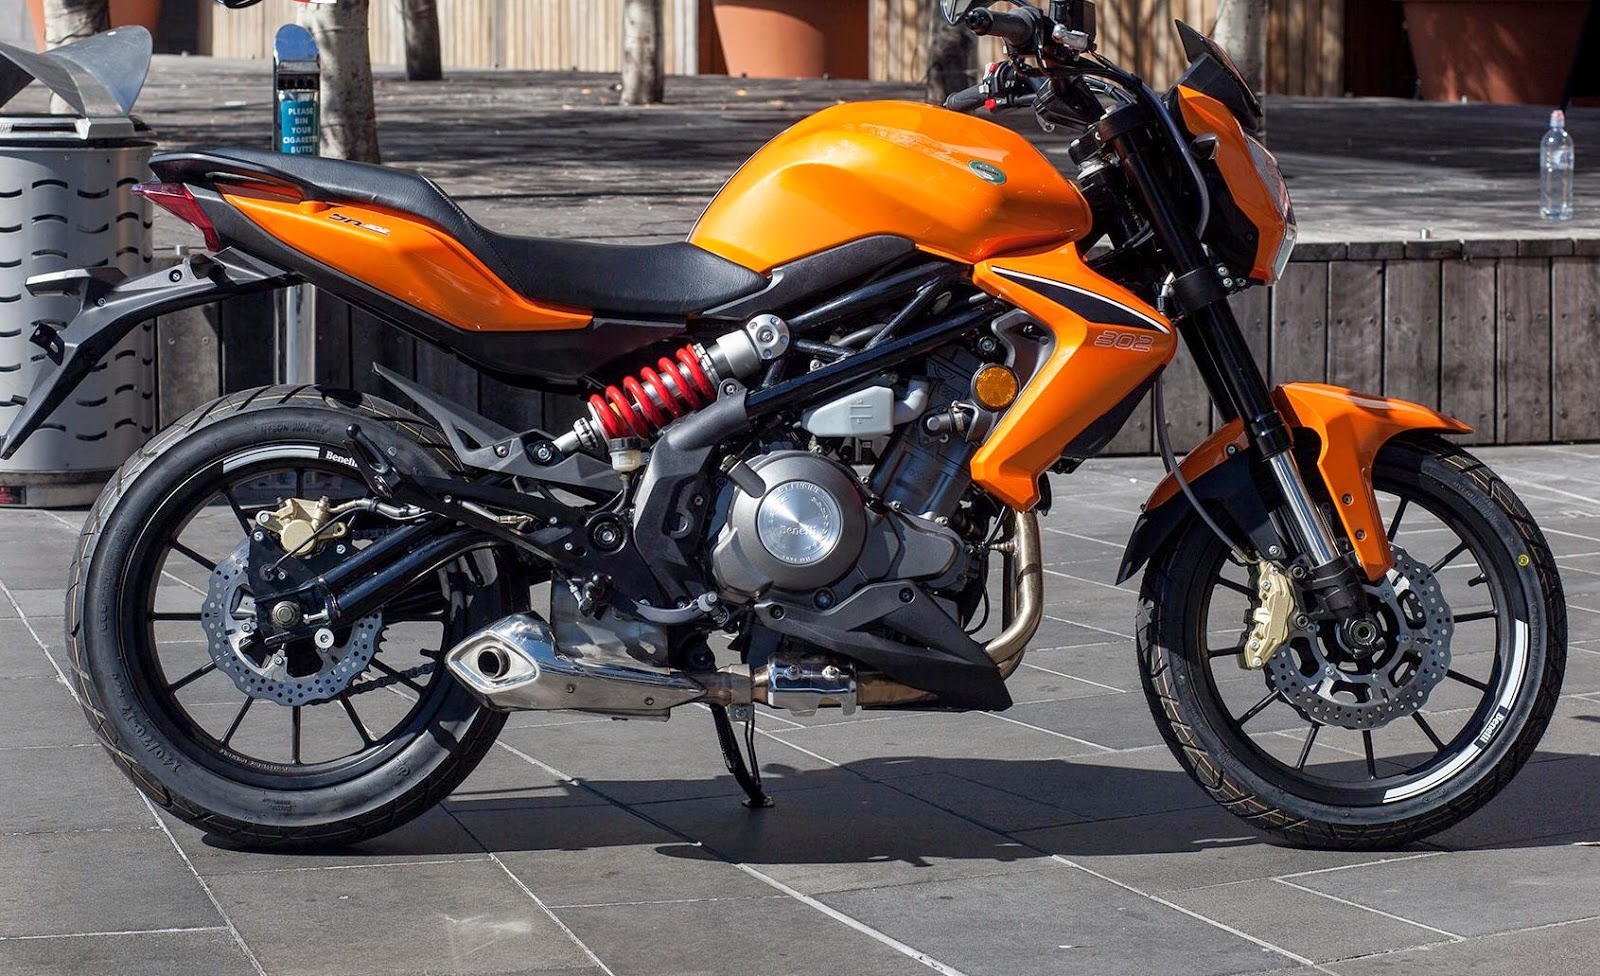 2015 Benelli BN 302 Motorcycle Ready To Launch In India